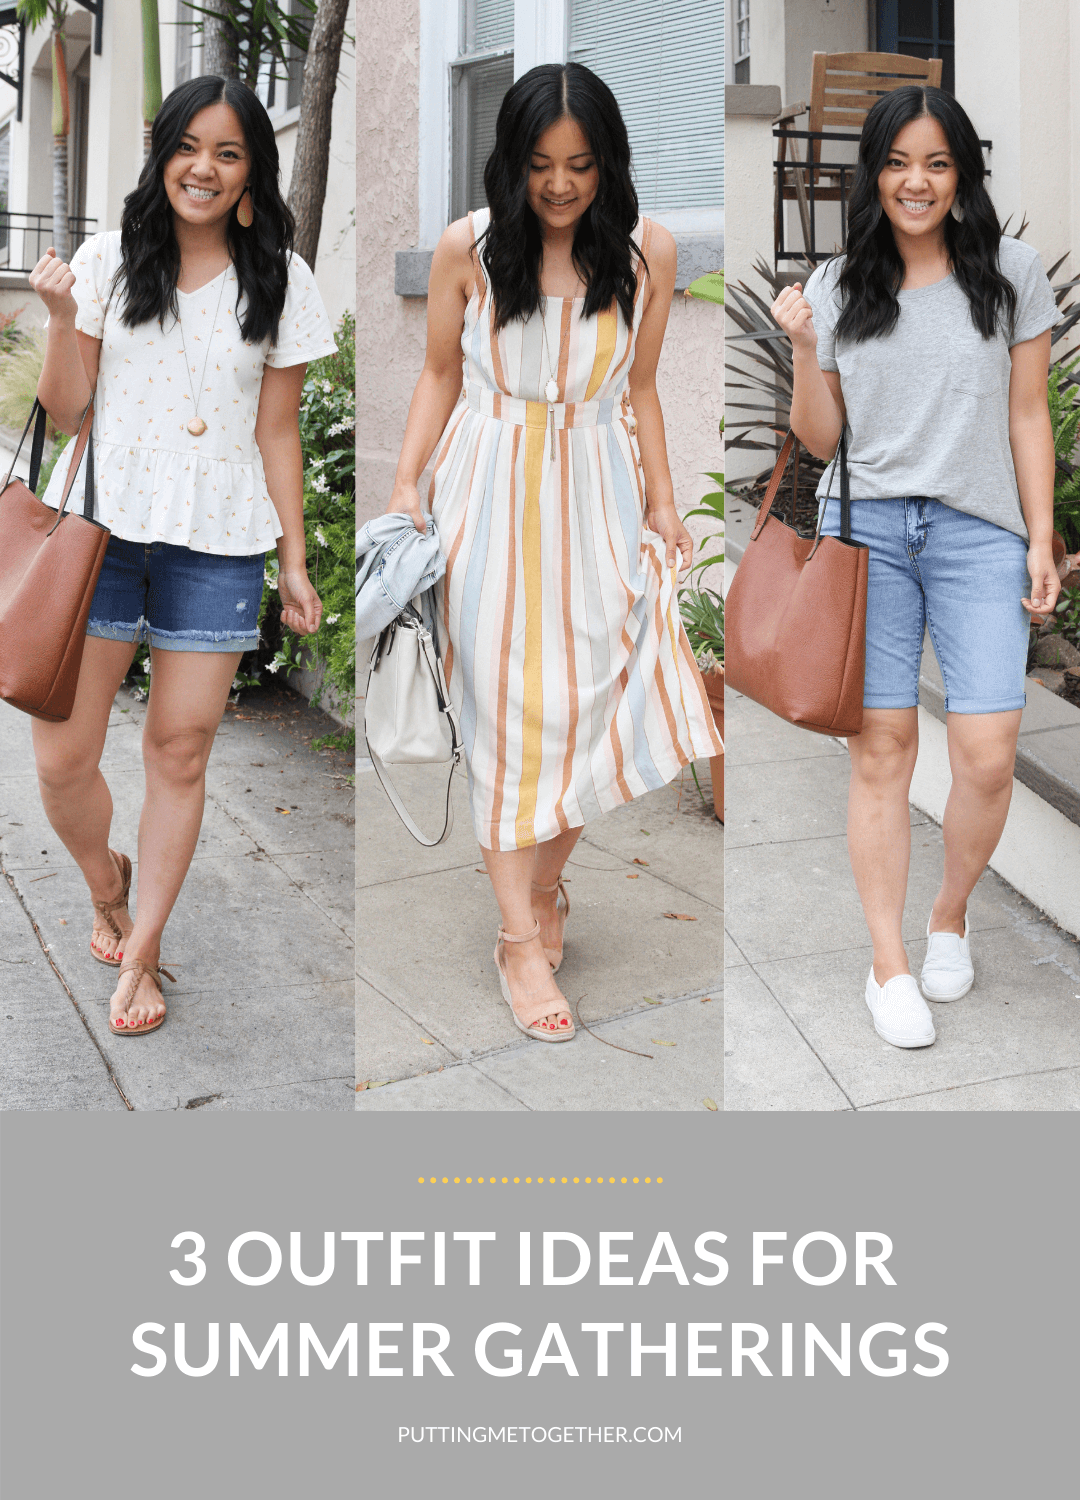 3 Outfit Ideas for Summer Gatherings